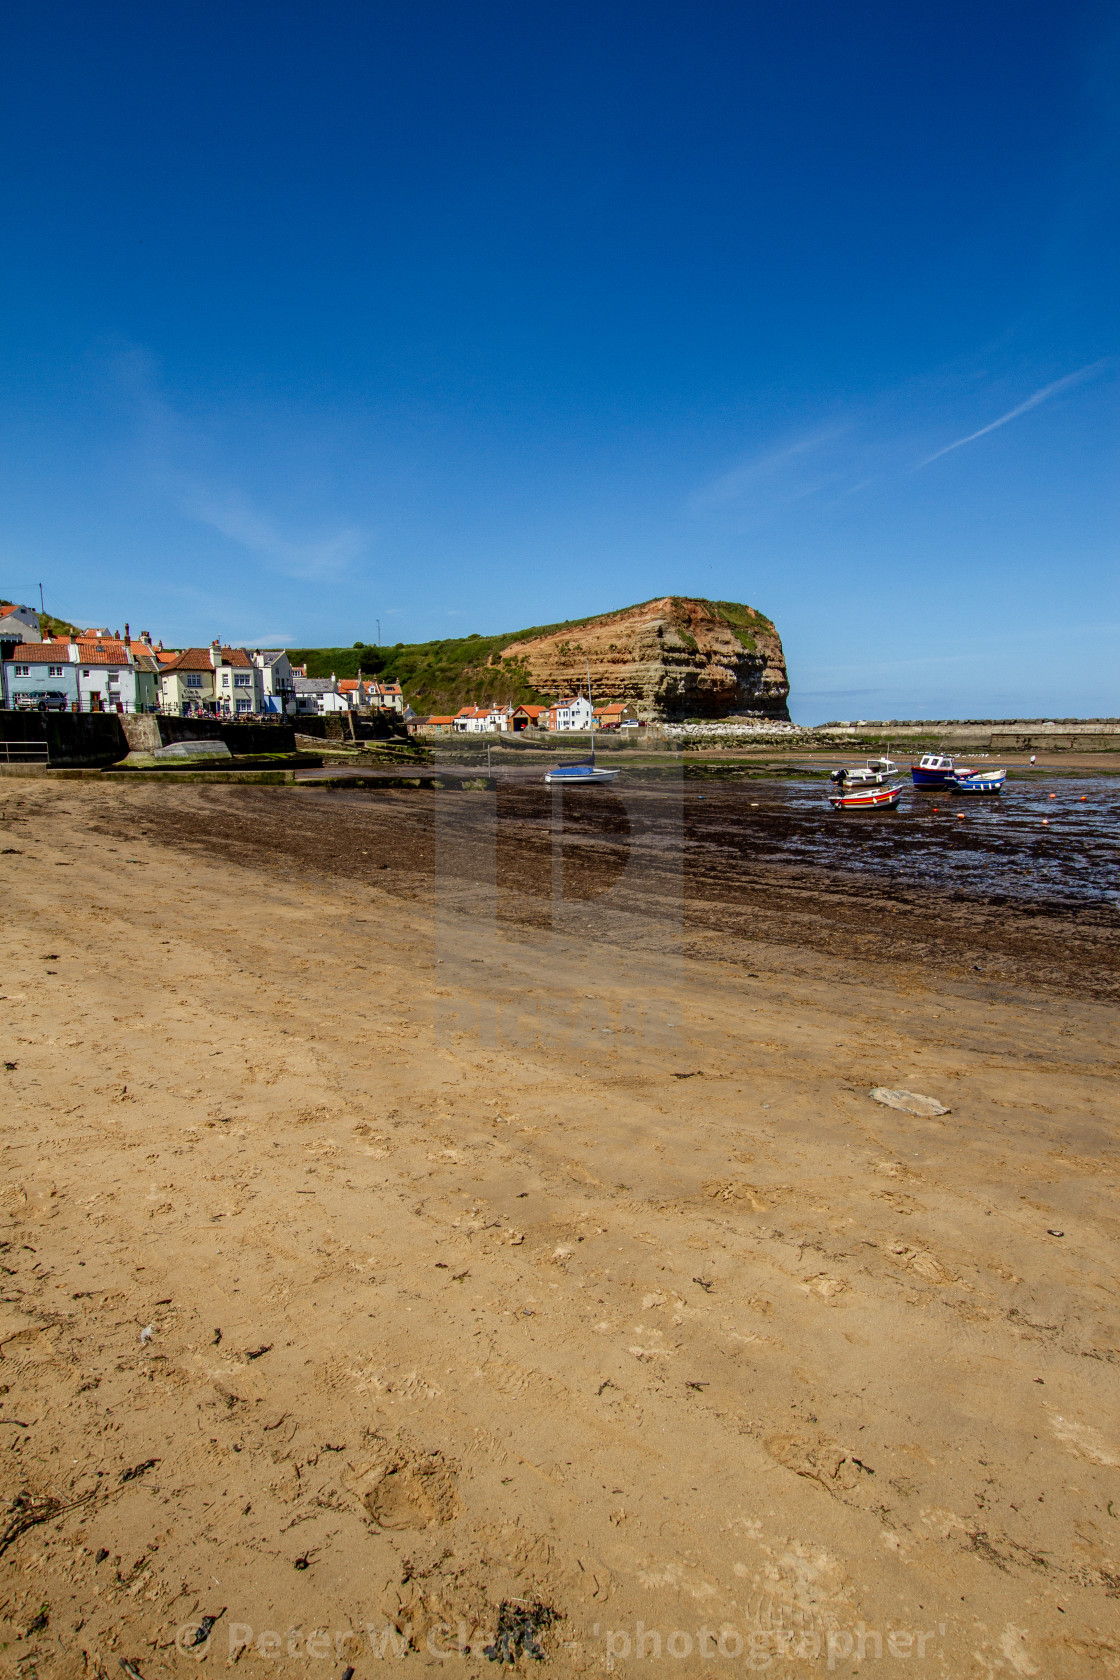 """""""Staithes and Cowbar Nab, Fishing Boats to the Foreground. Yorkshire Coast, England."""" stock image"""